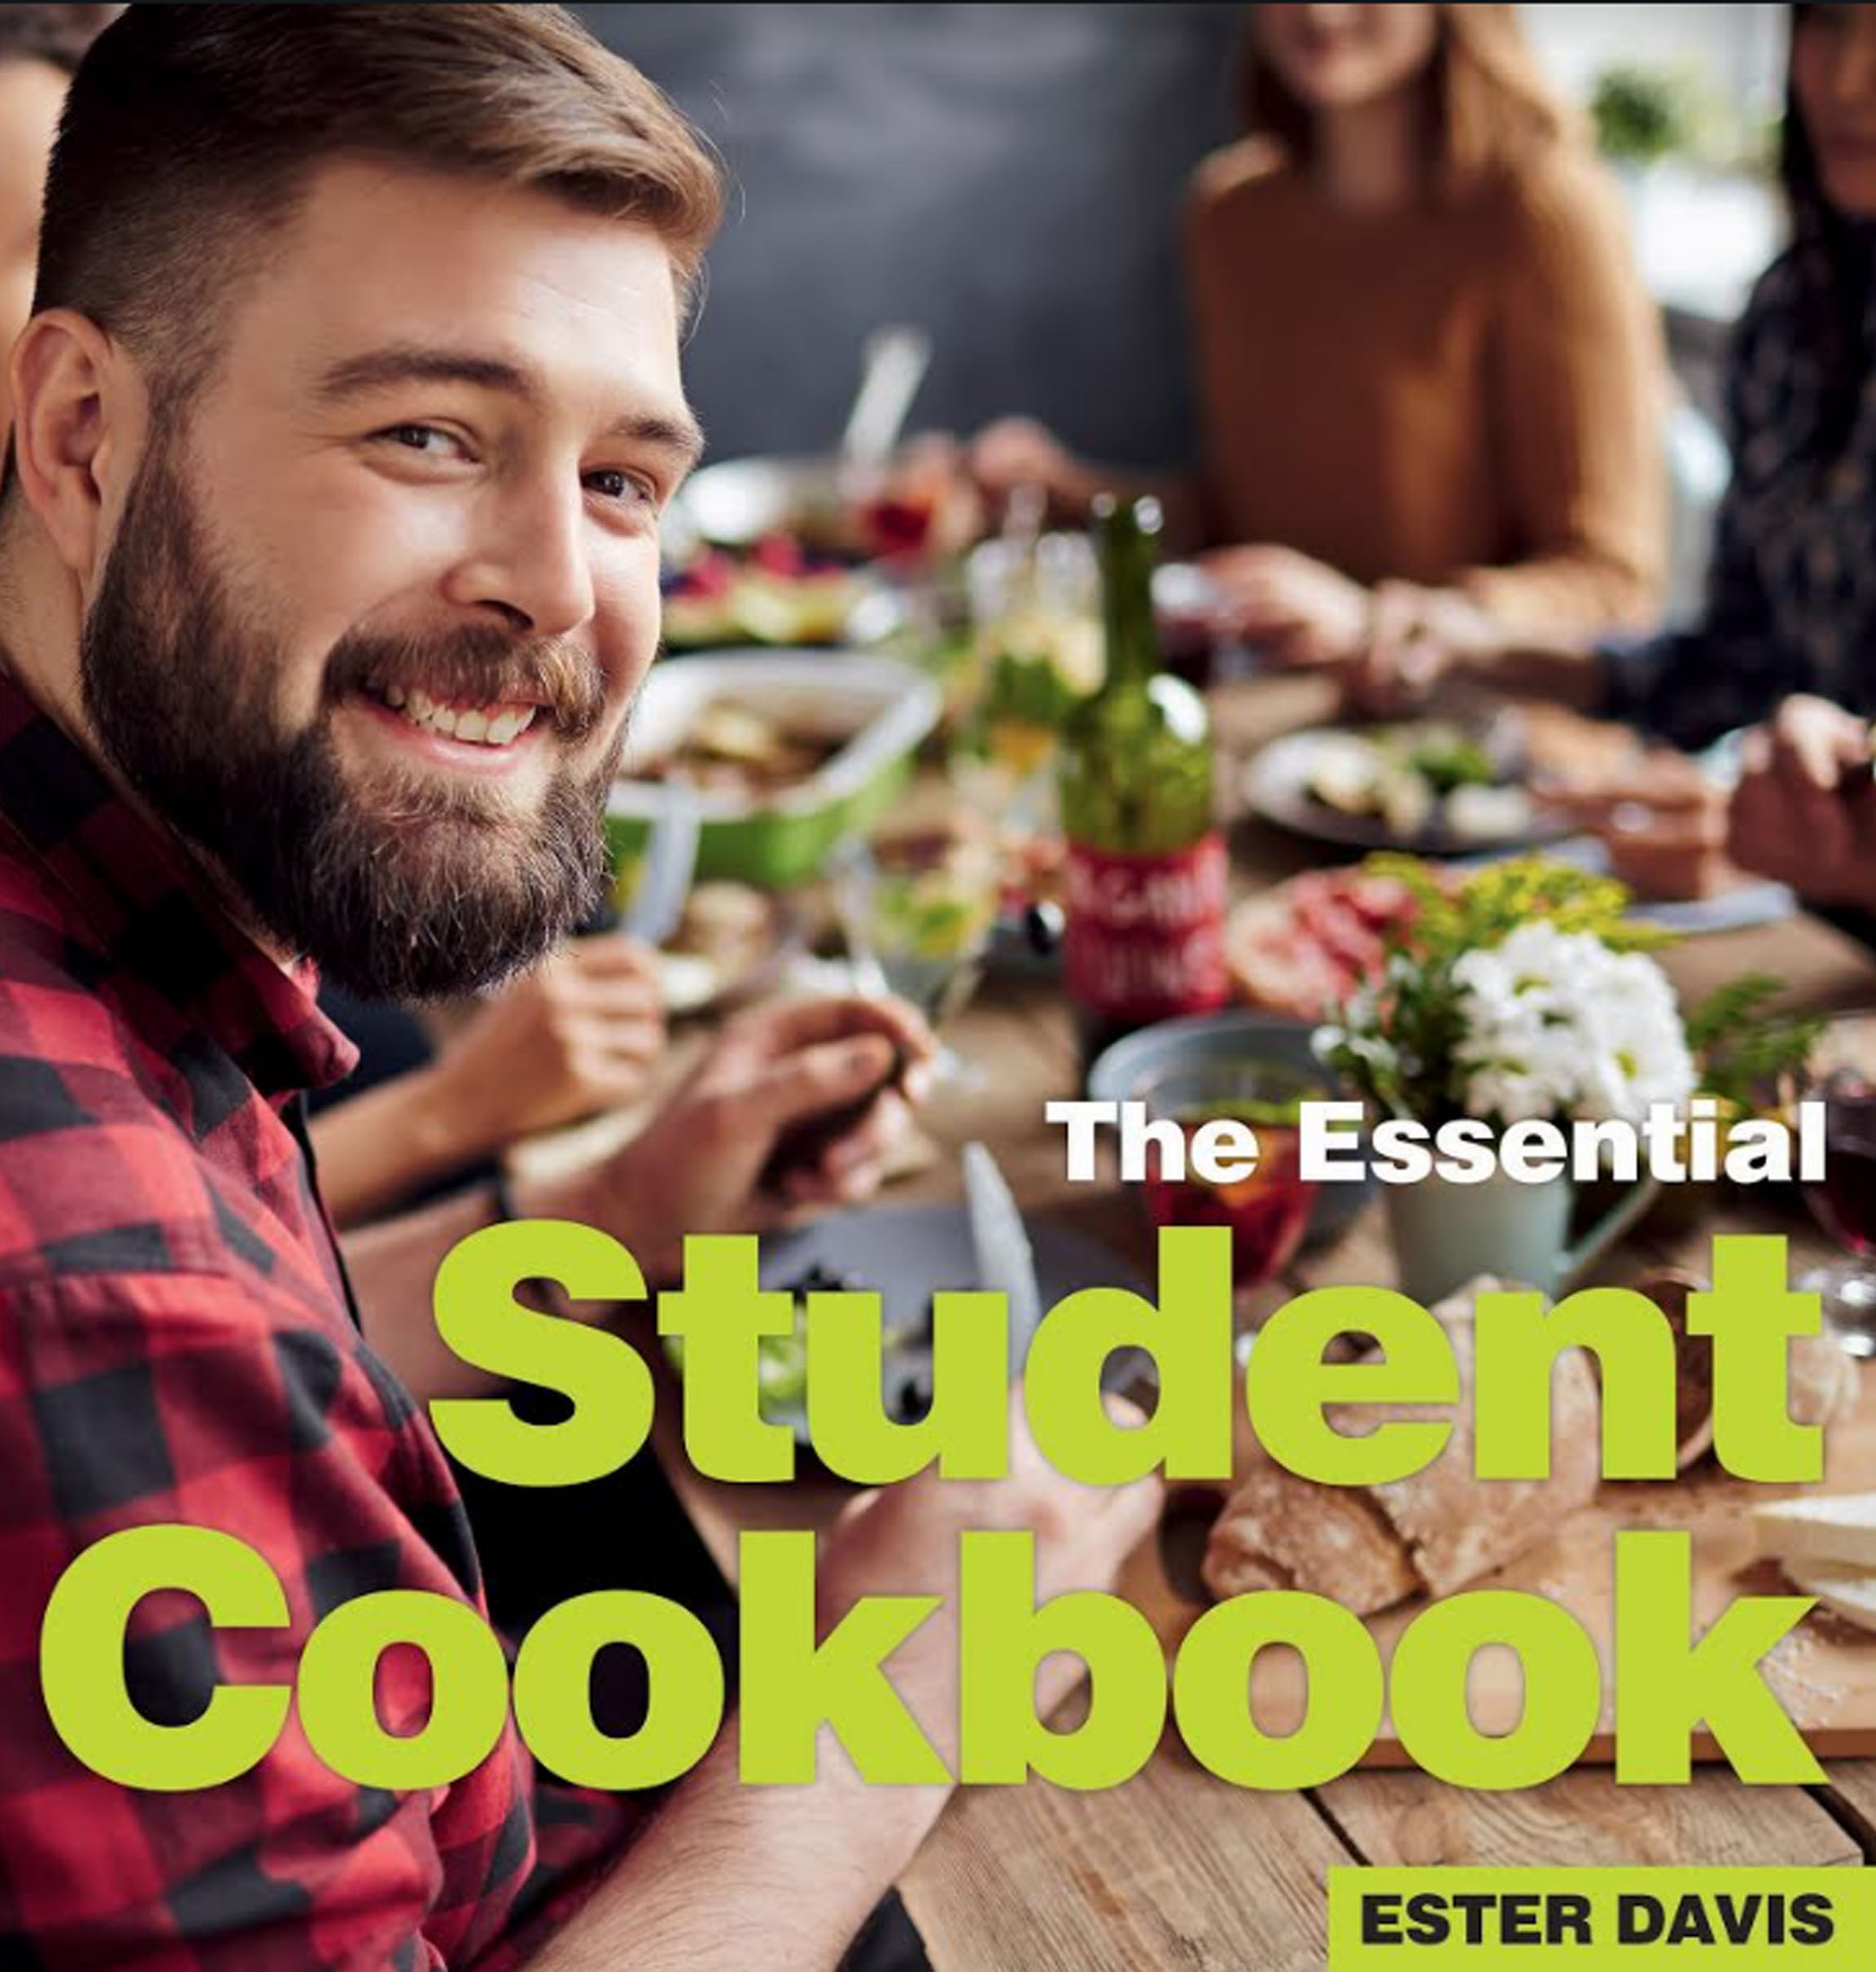 The Essential Student Cookbook